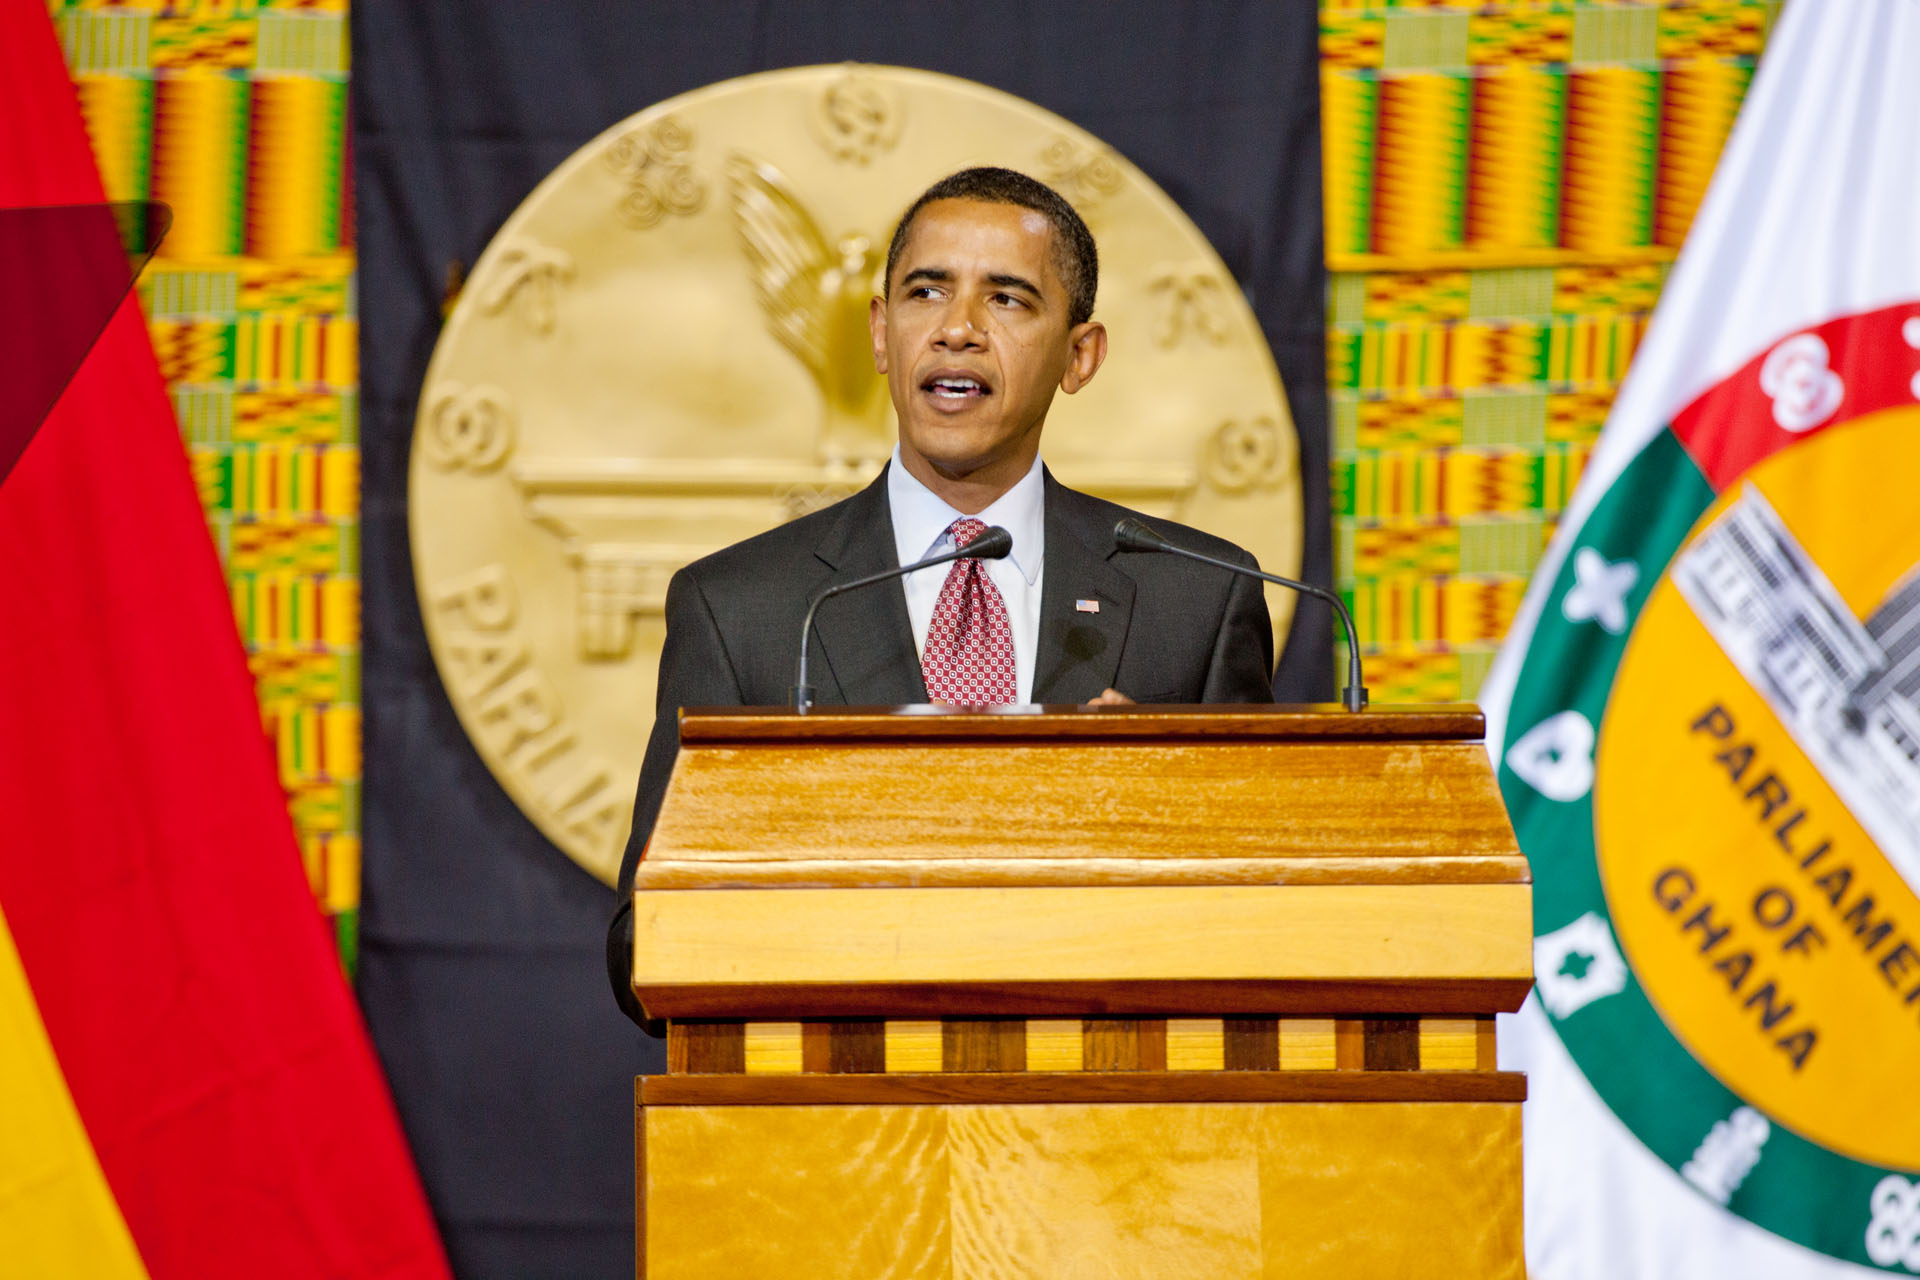 President Barack Obama delivers remarks to Parliament in Accra, Ghana, July 11, 2009